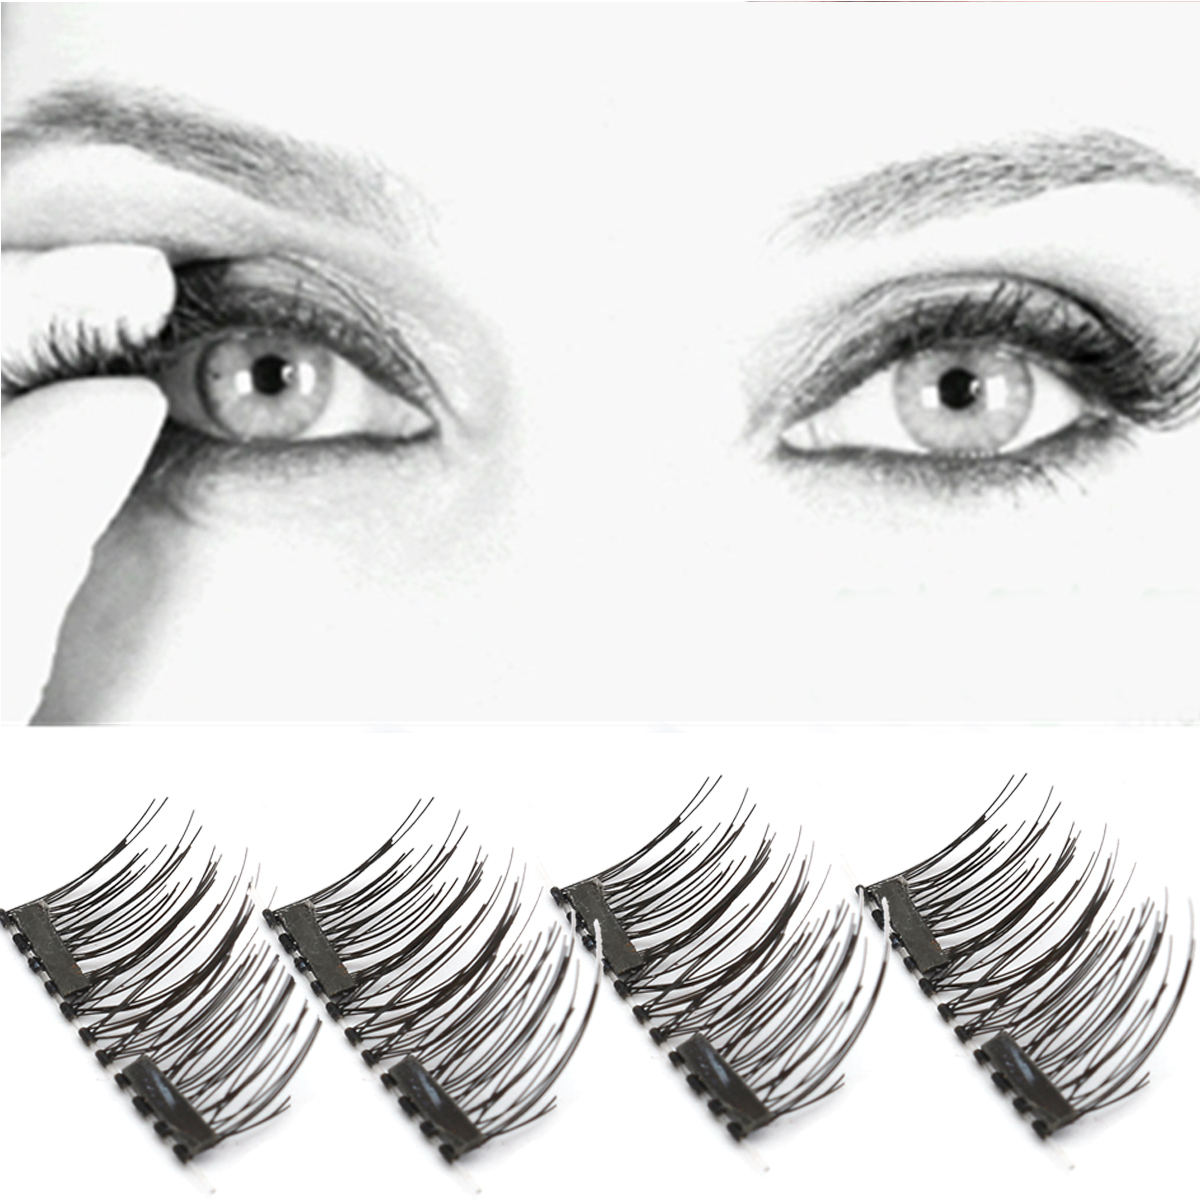 4pcs-10-par-3D-Vison-Magnetico-Pestanas-Falsas-Ojos-Pestanas-Extension-Natural